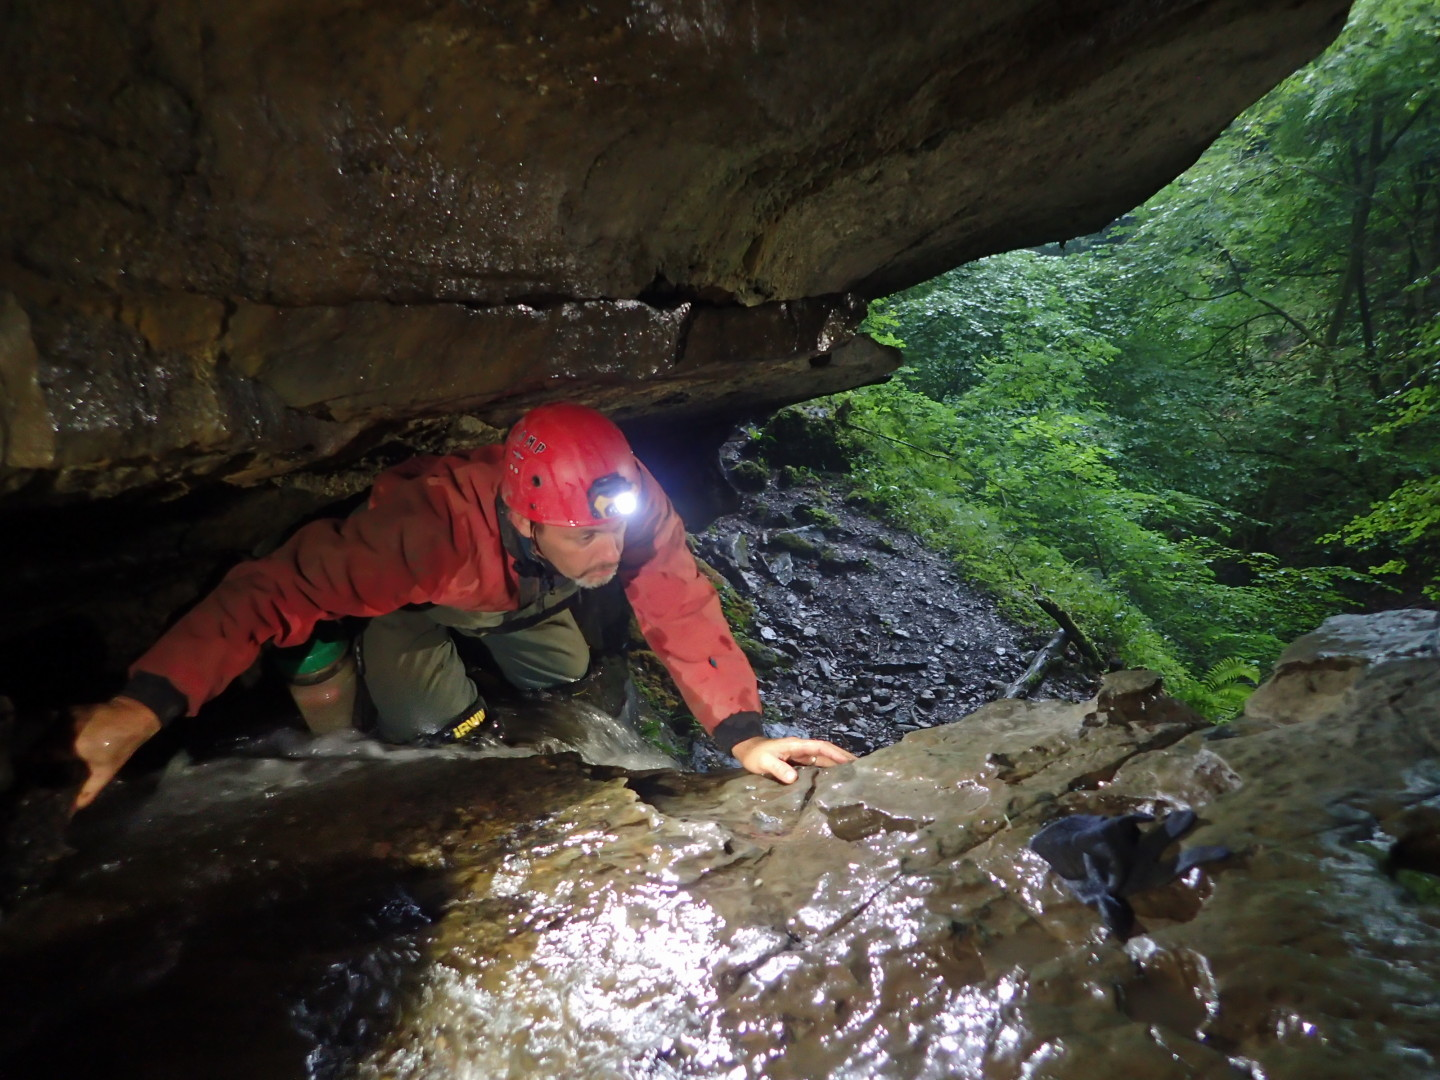 Huw D climbing into cave